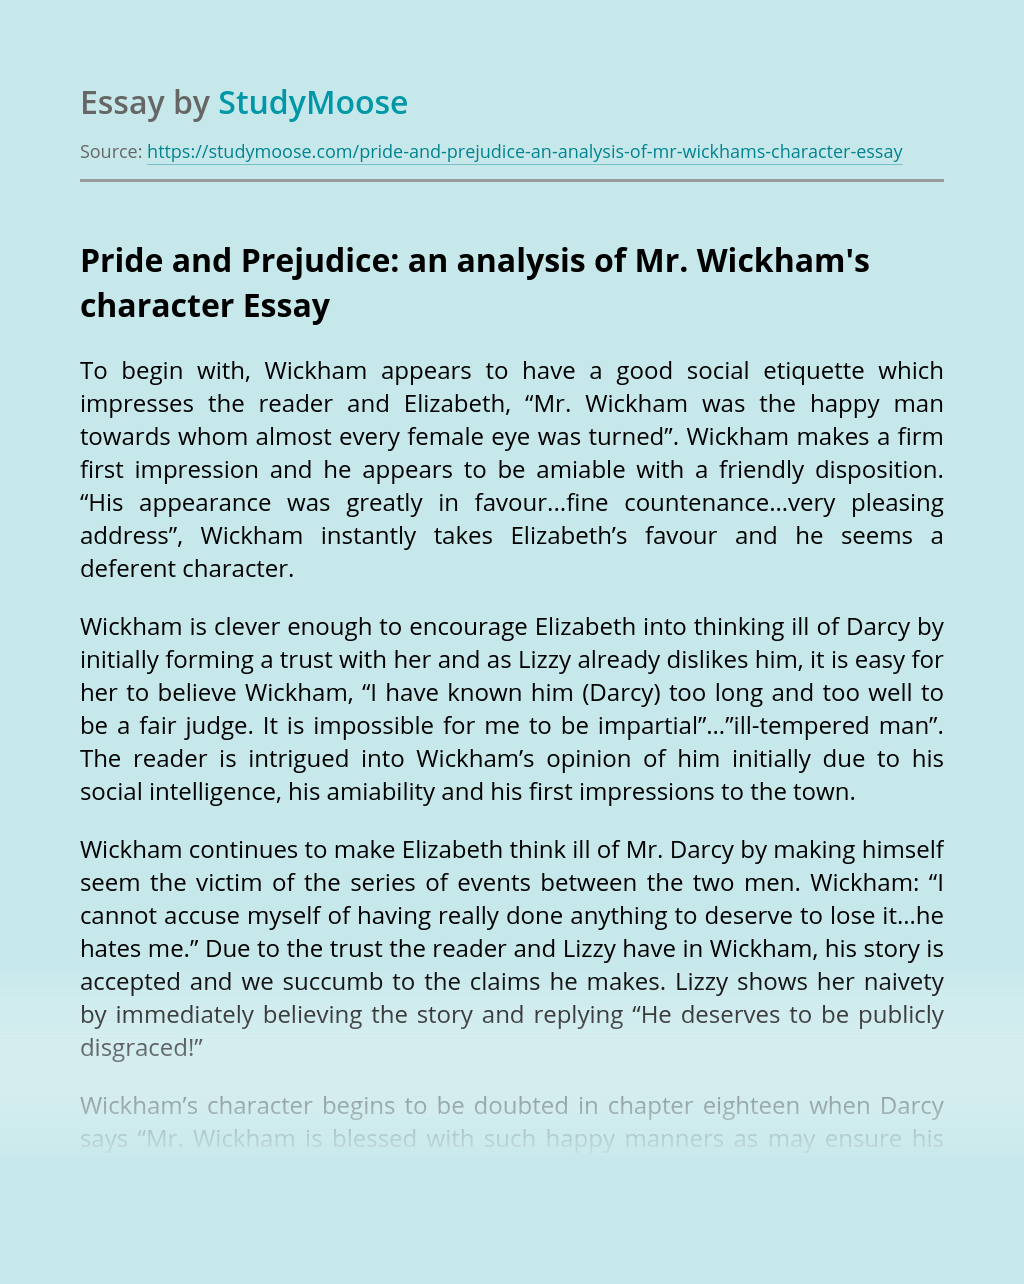 Pride and Prejudice: an analysis of Mr. Wickham's character